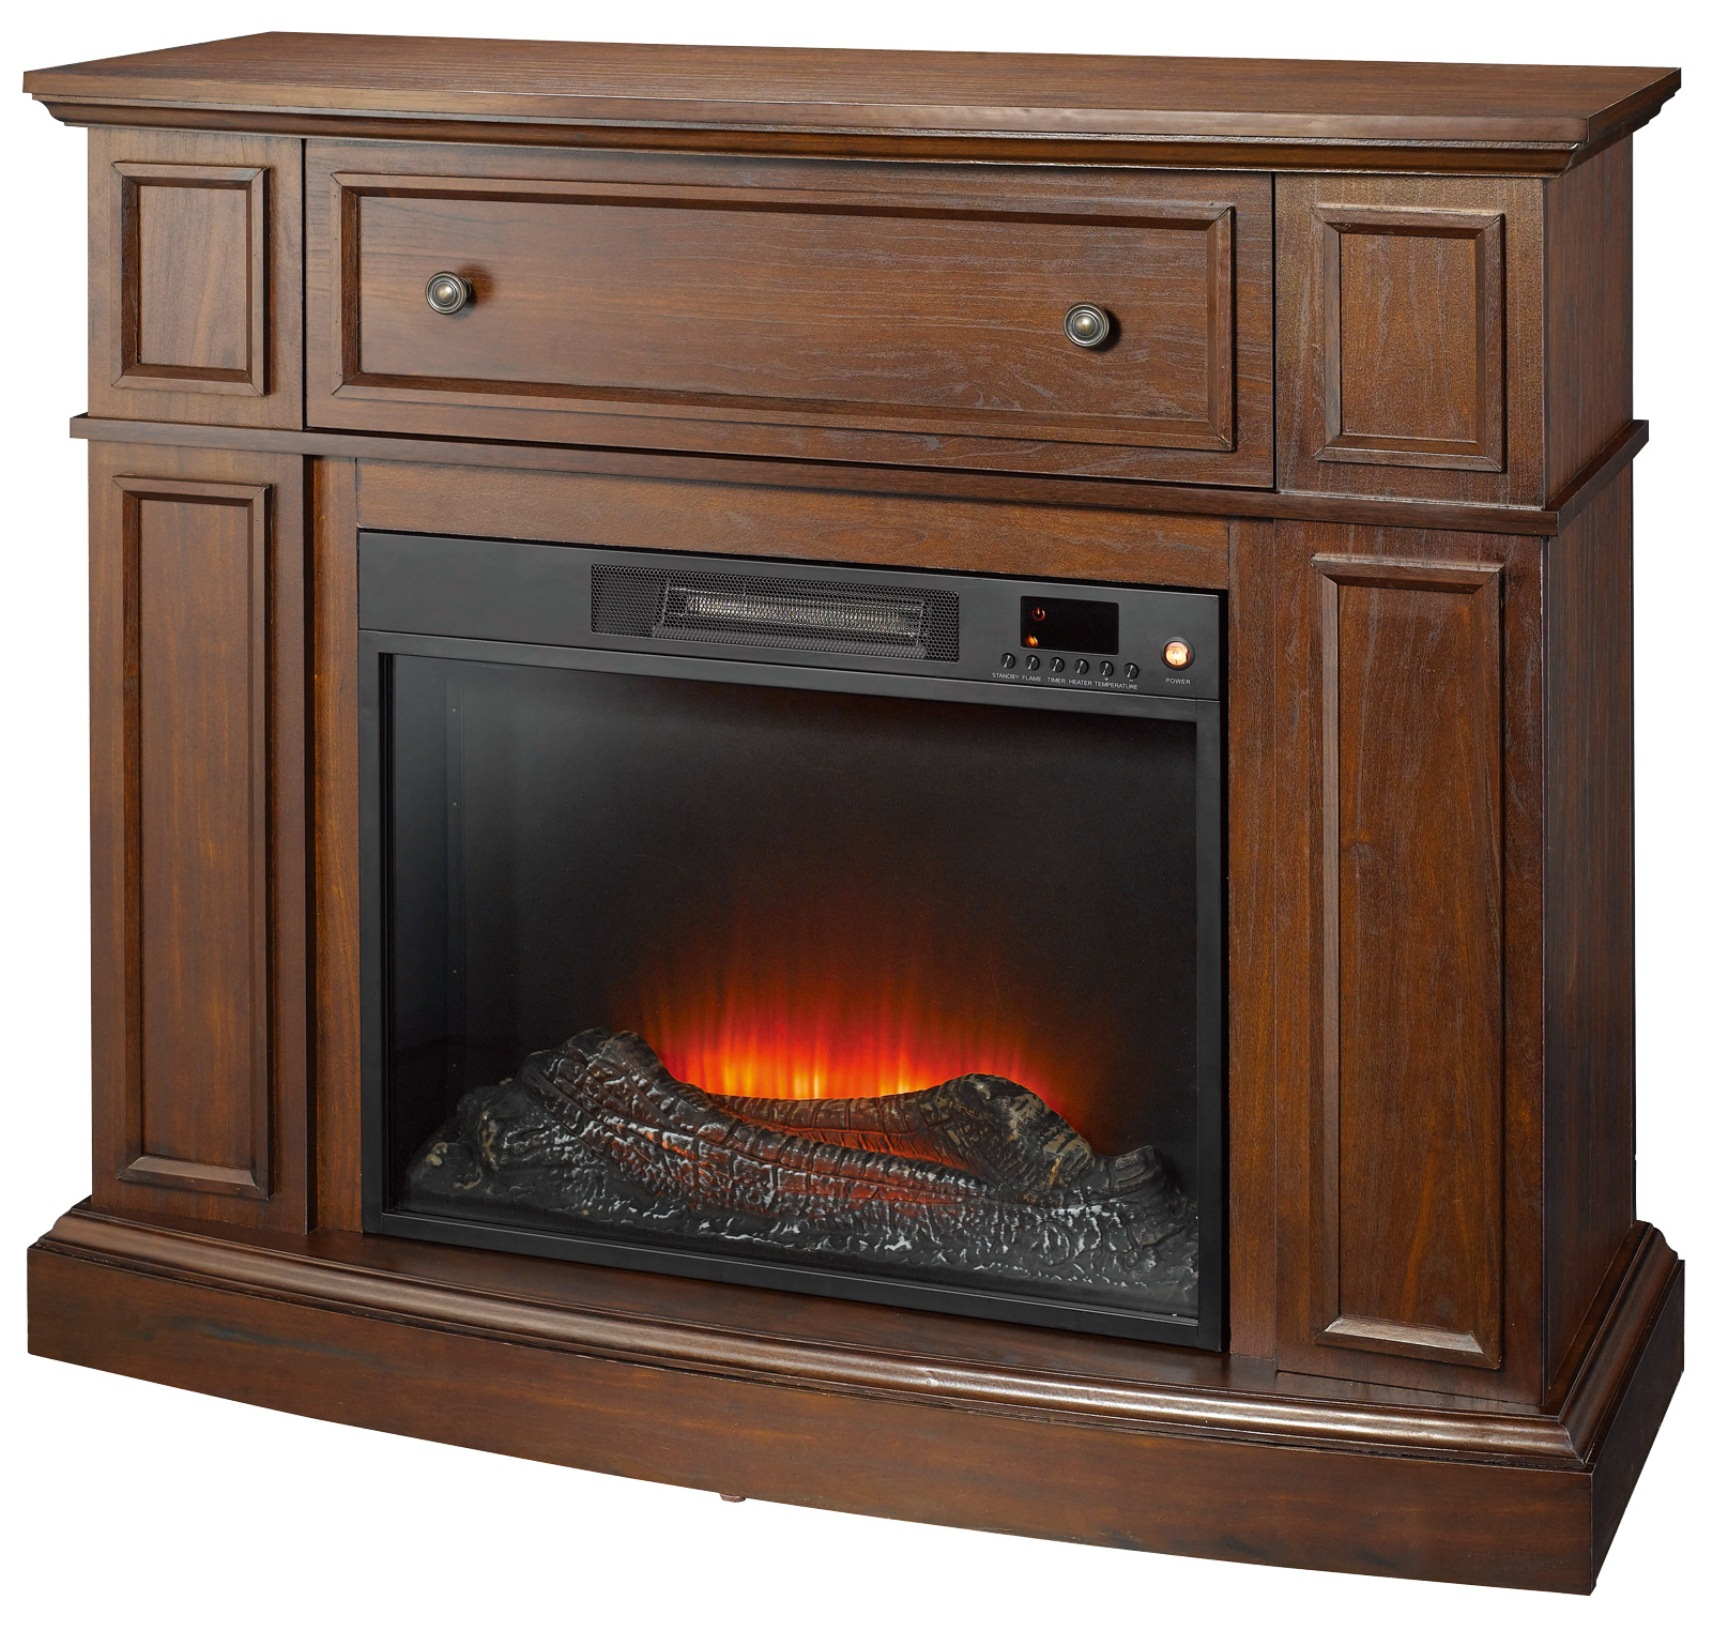 Electric Fireplace.com Essential Home Shaw Electric Fireplace Cherry